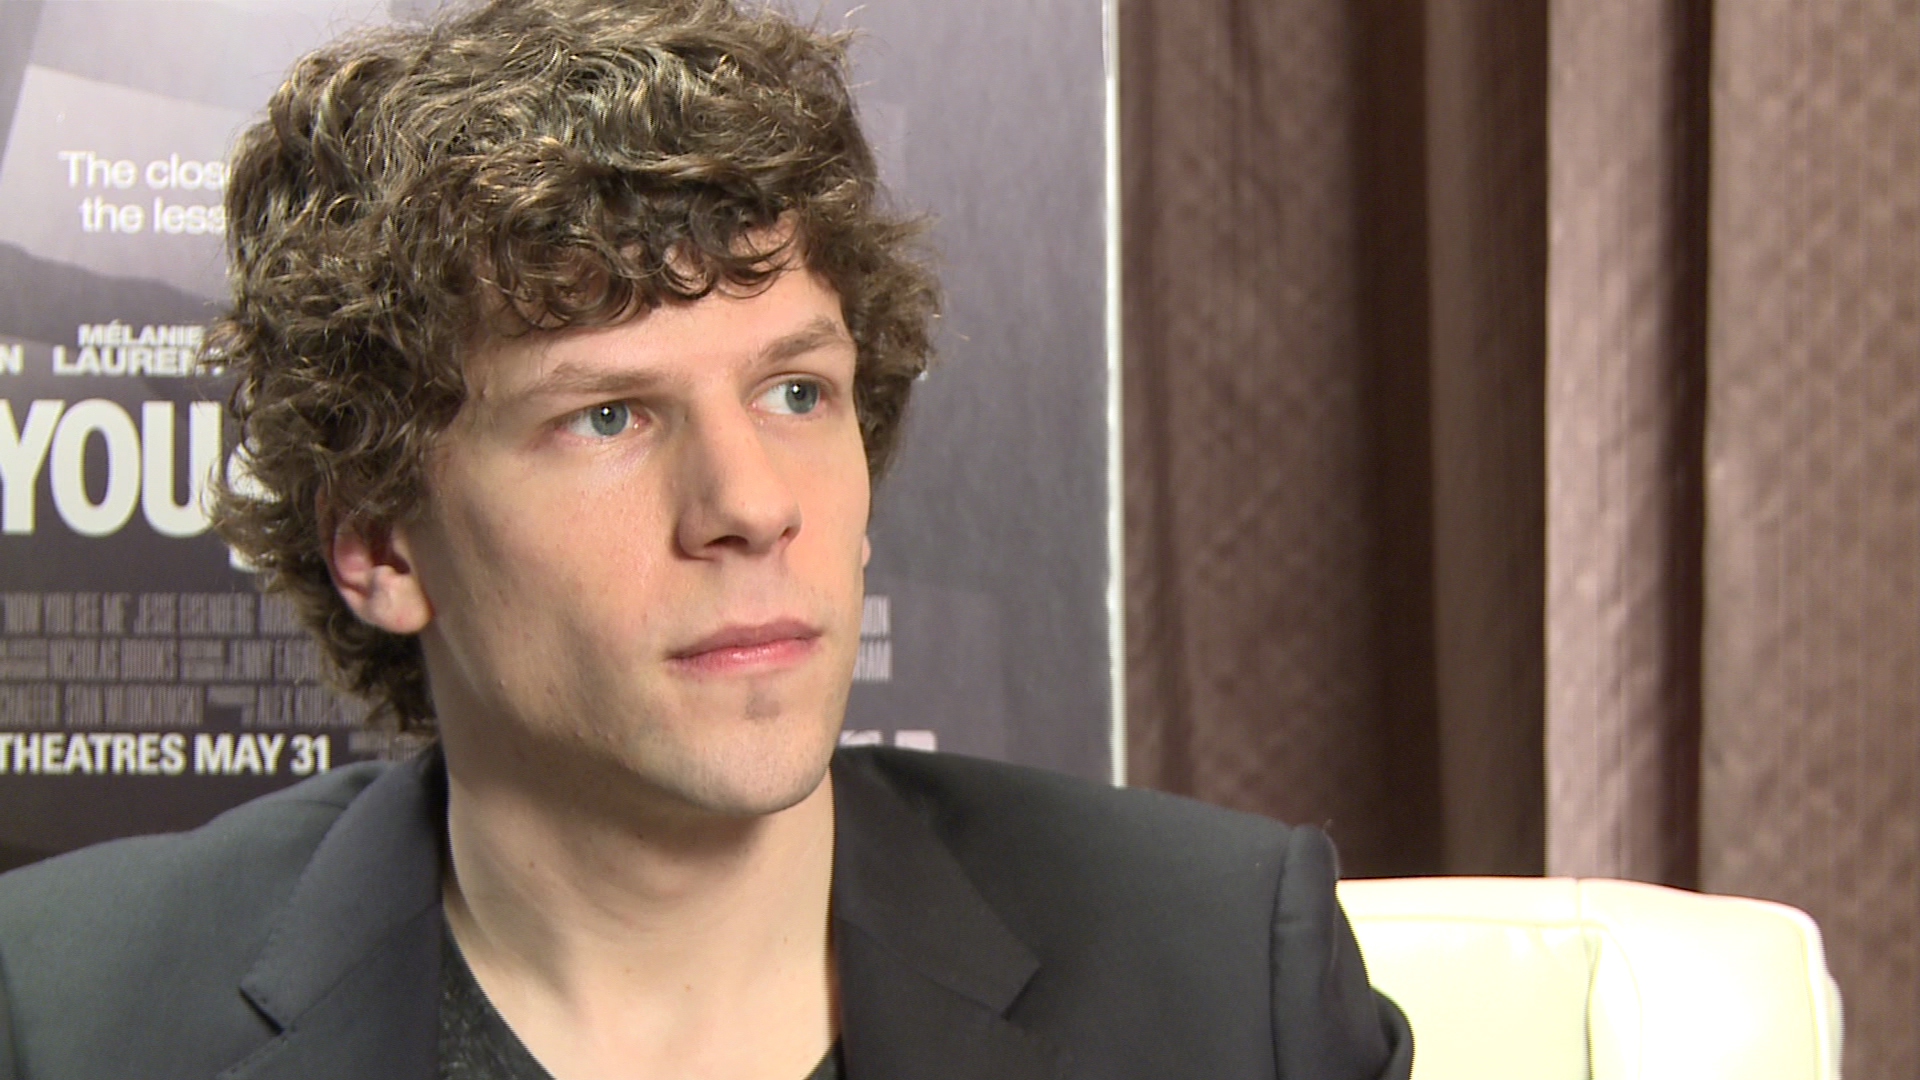 LiVECAST.ca -now you see me - Press Junket